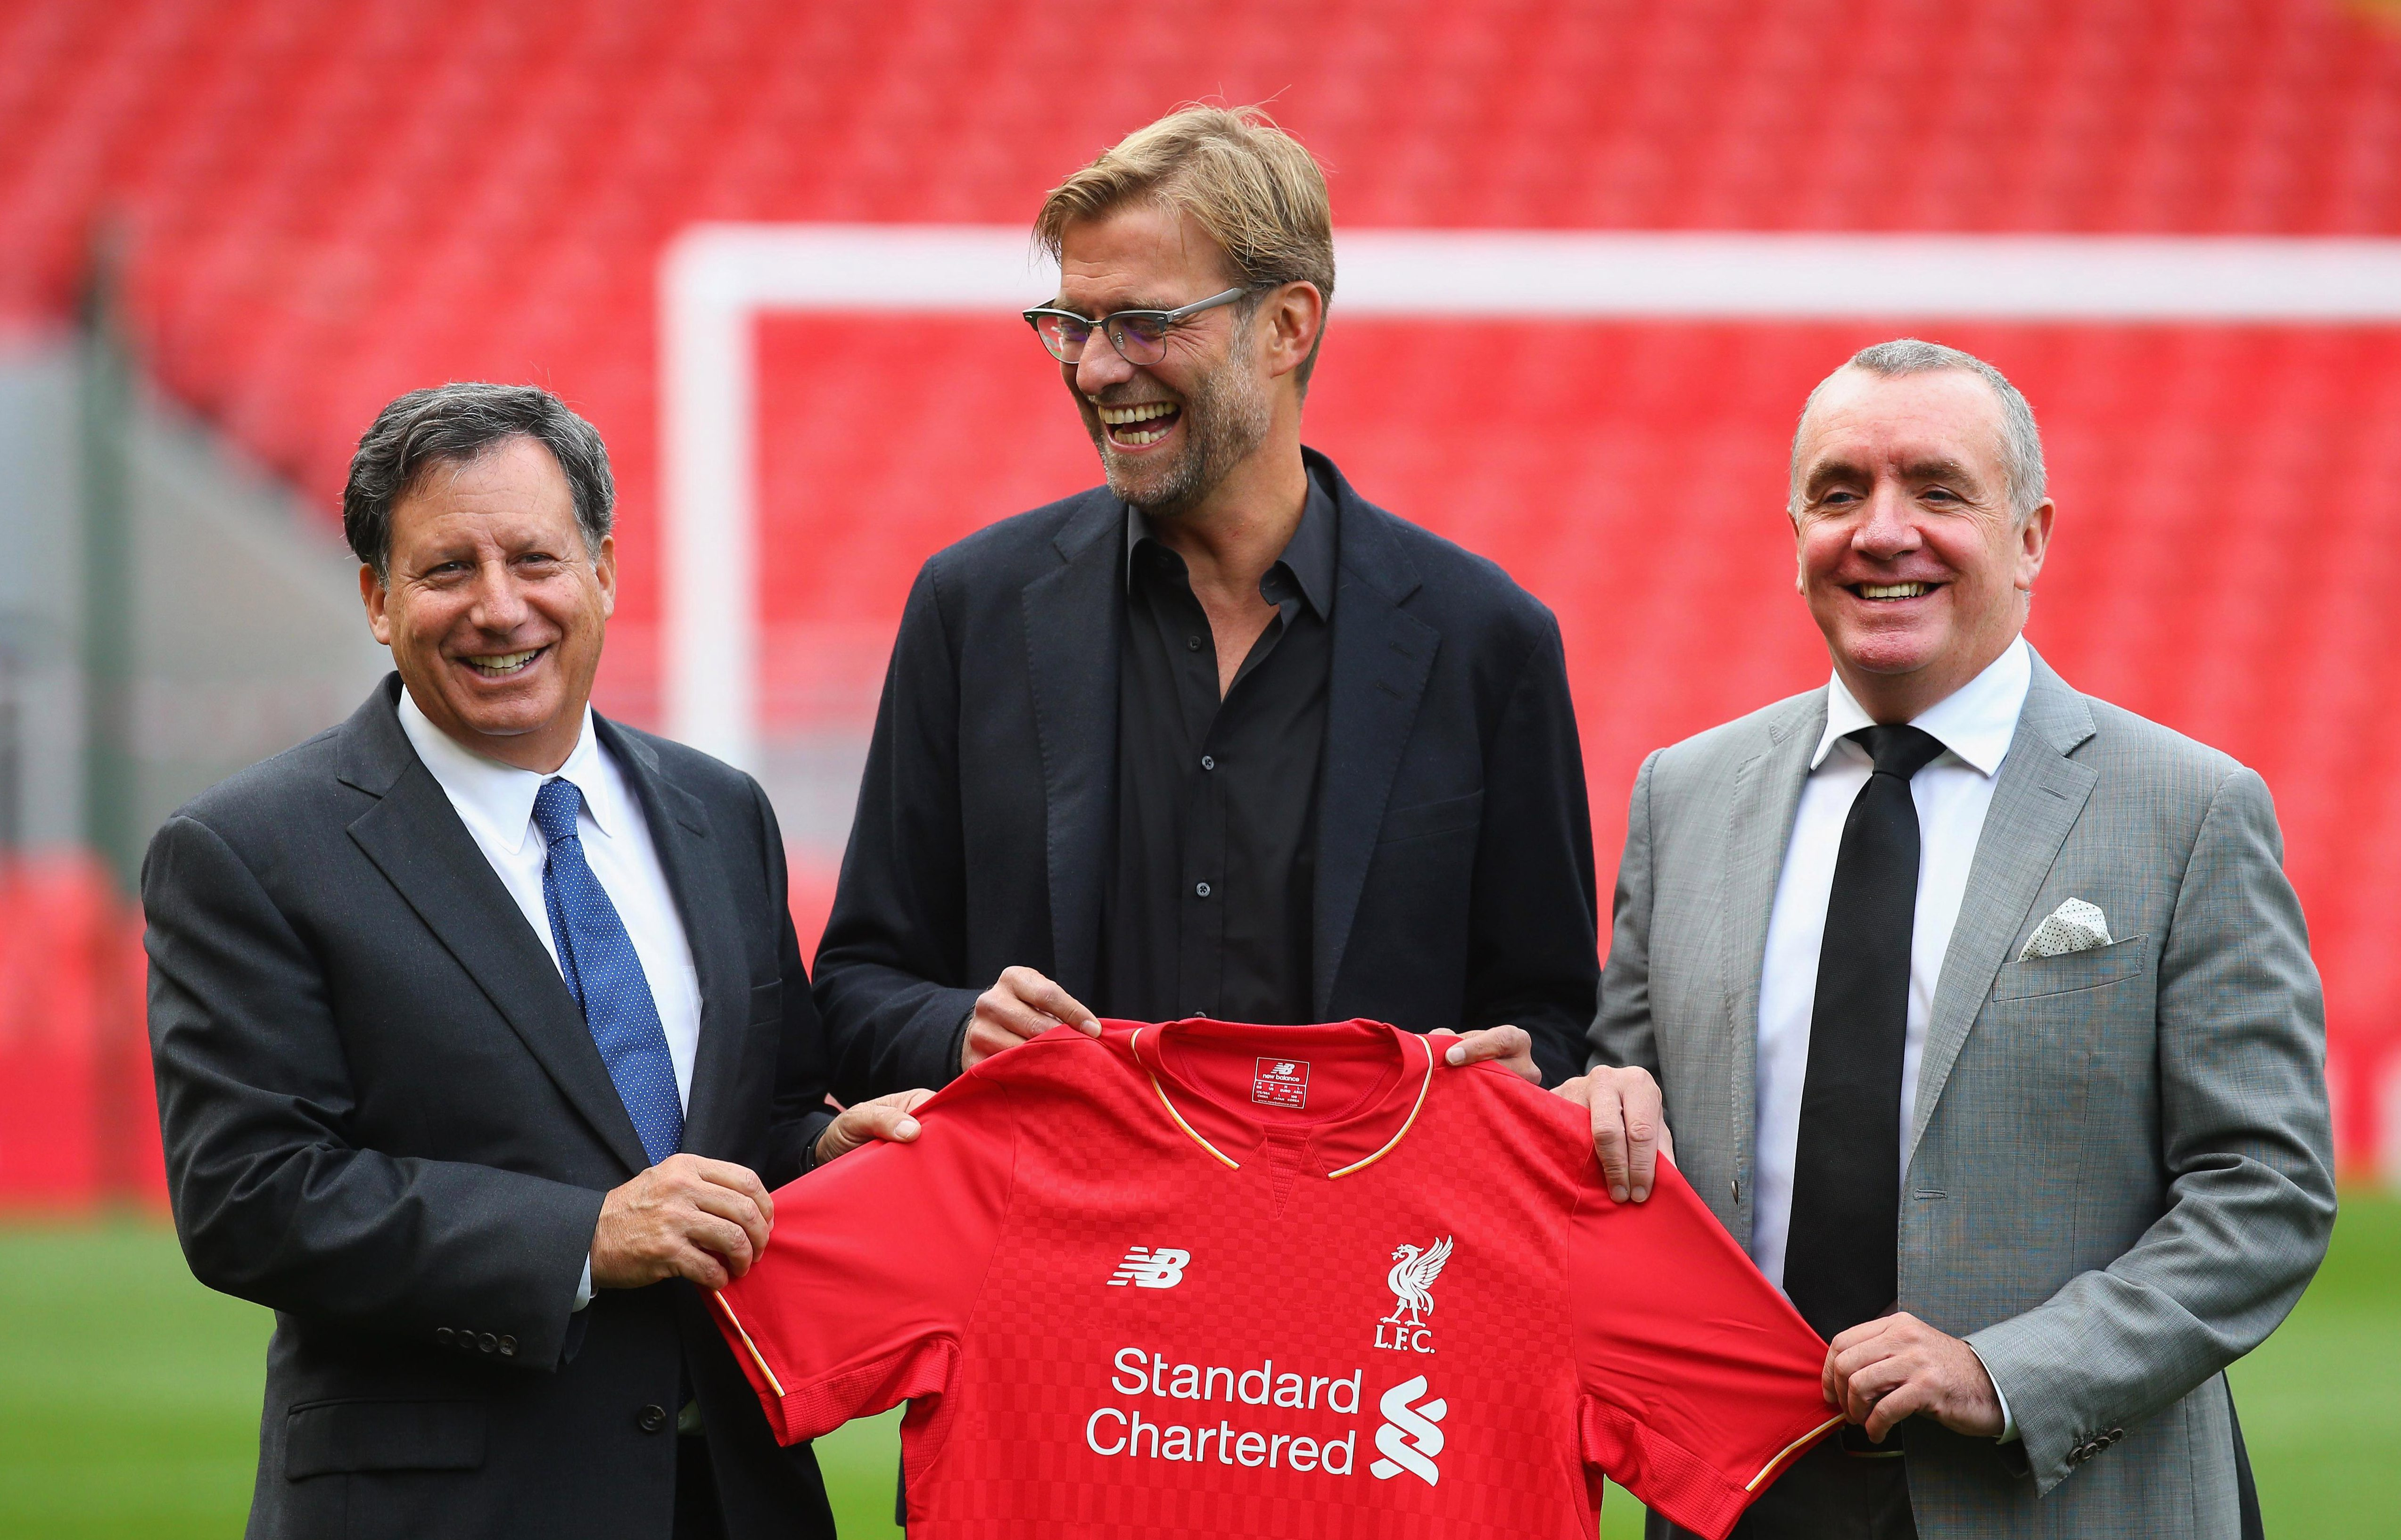 Klopp joined the Reds in October 2015